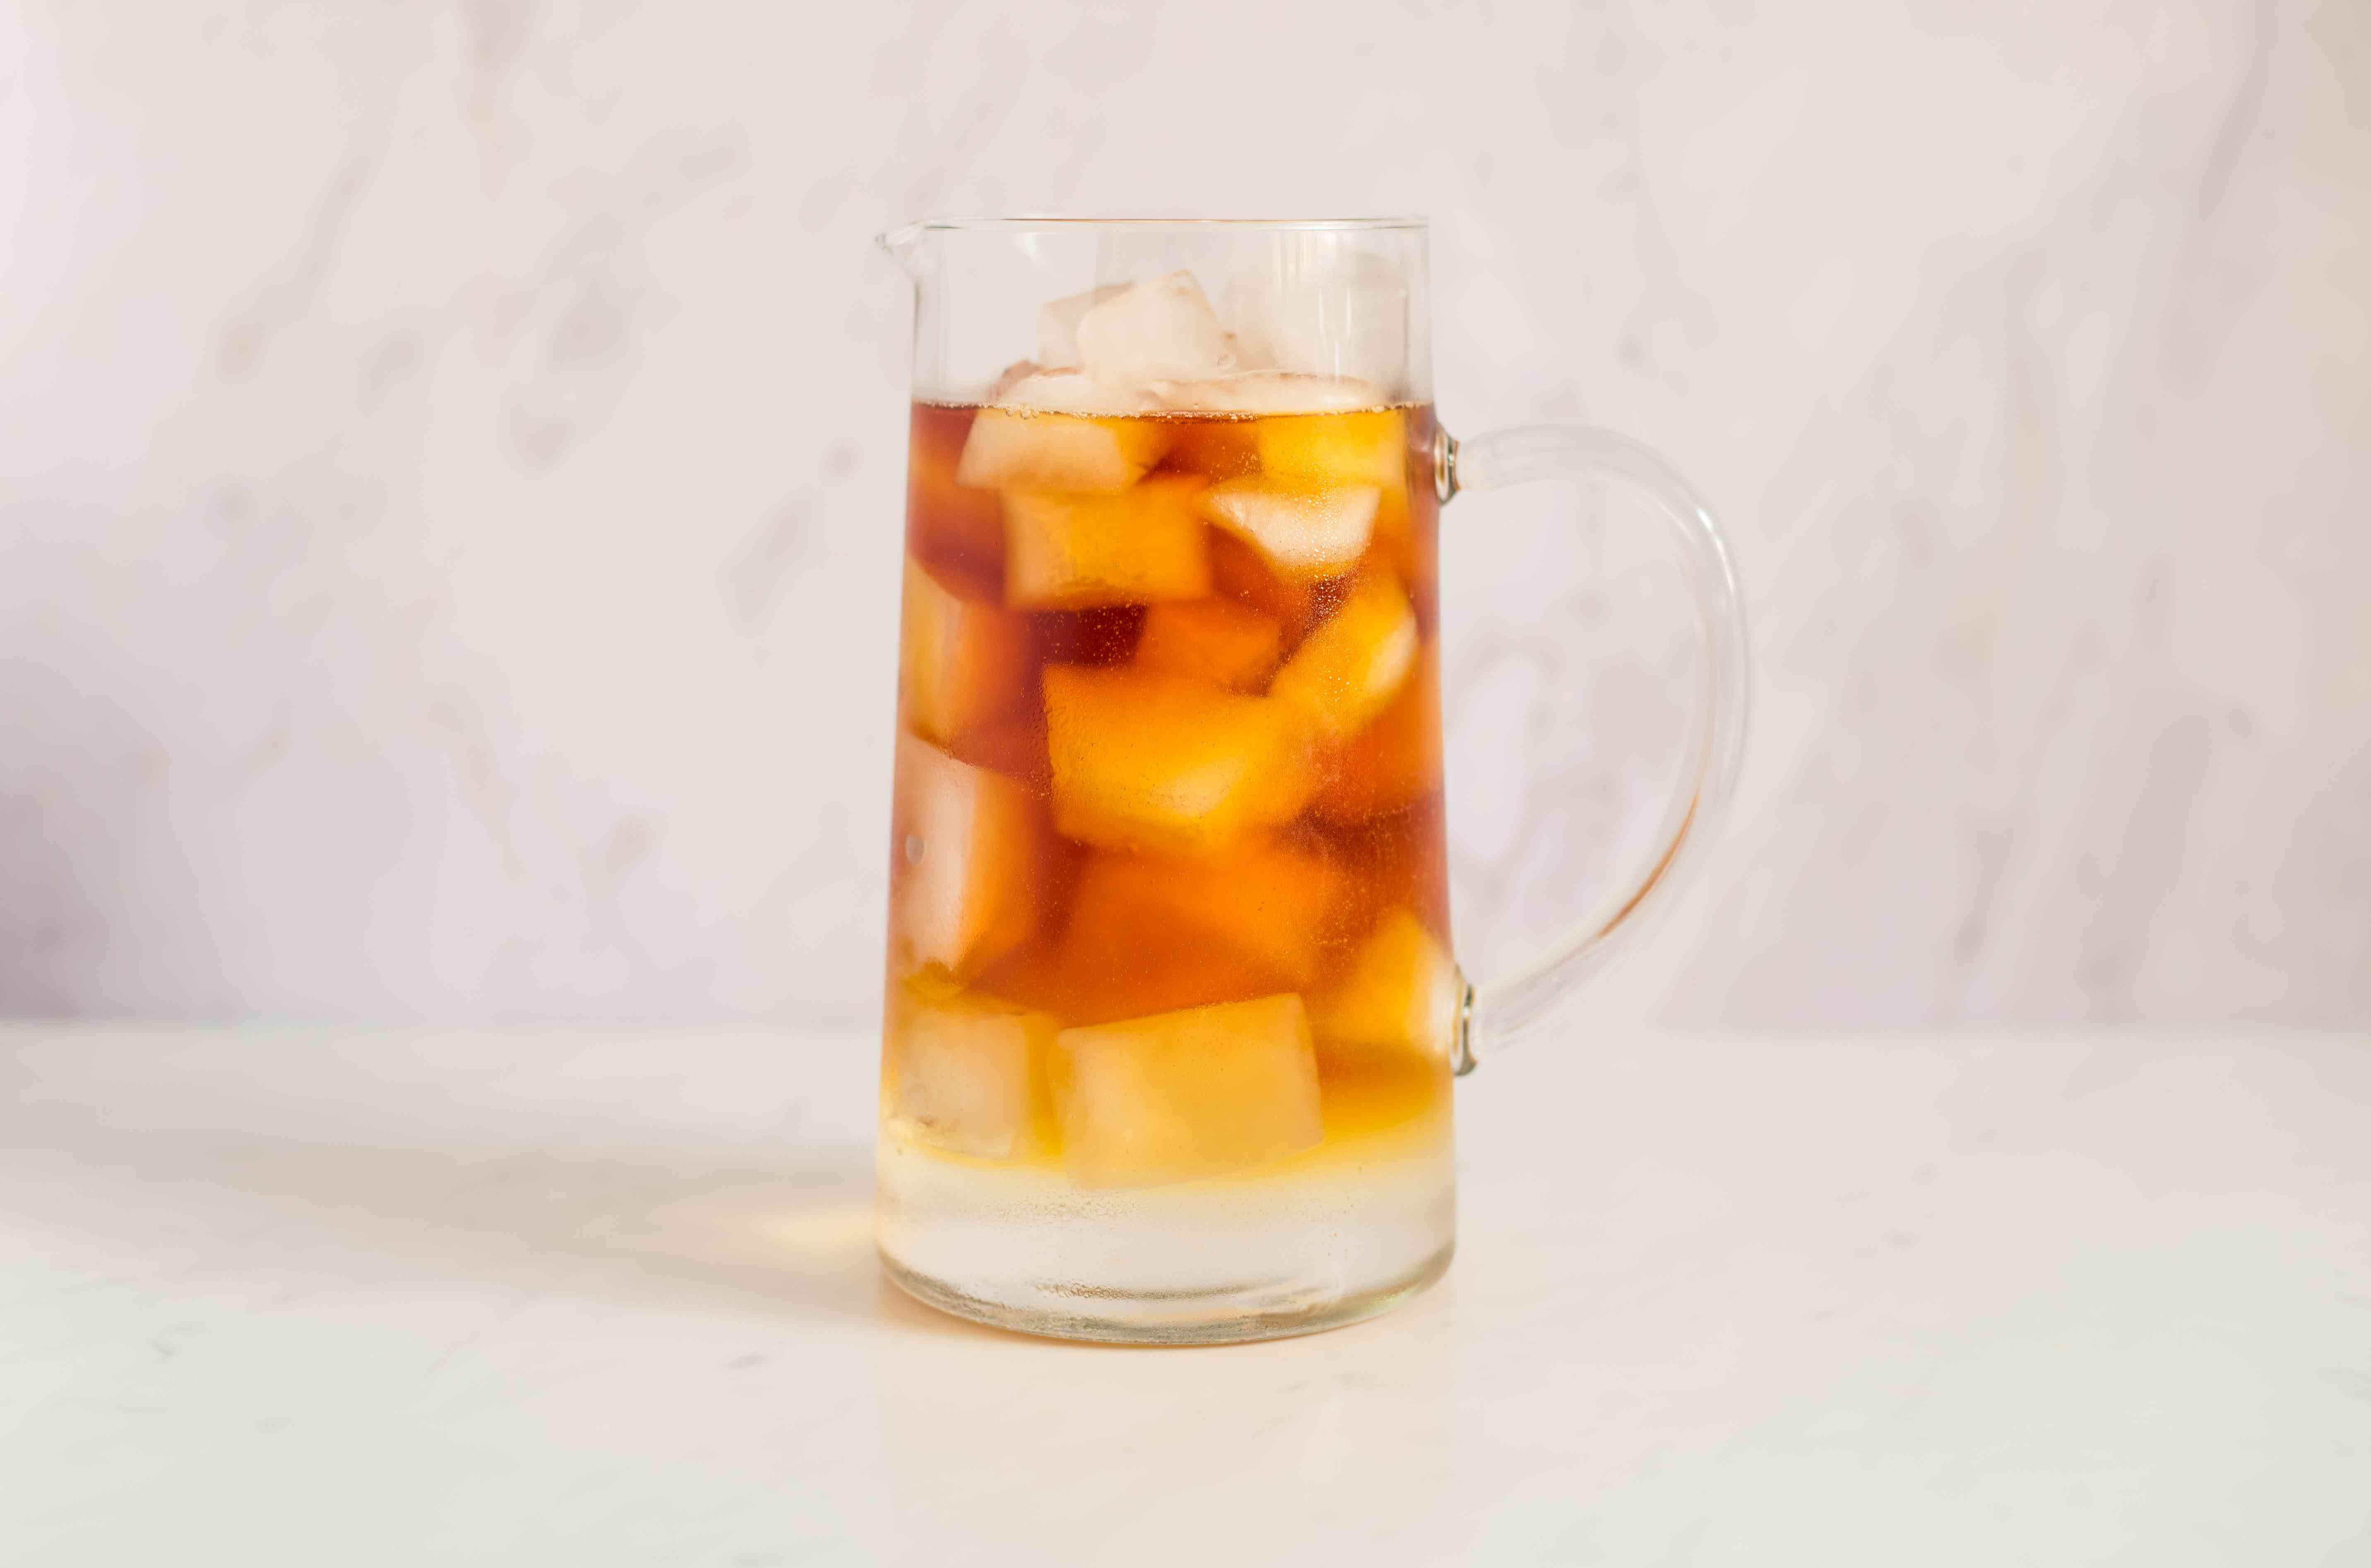 Pimm's, lemonade, and ice in a pitcher